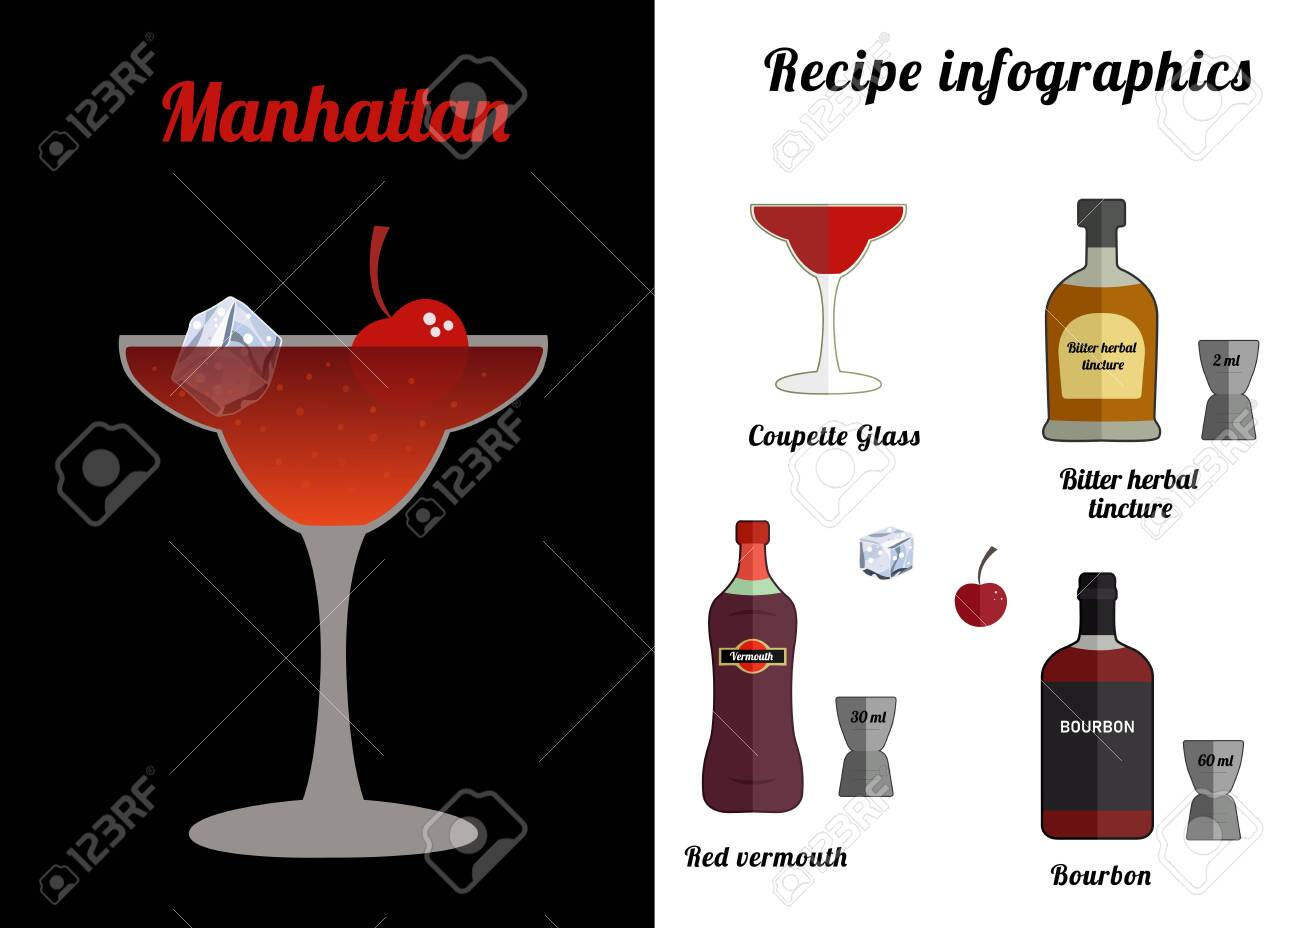 Alcoholic Popular Cocktail Manhattan Recipe With Ingredients